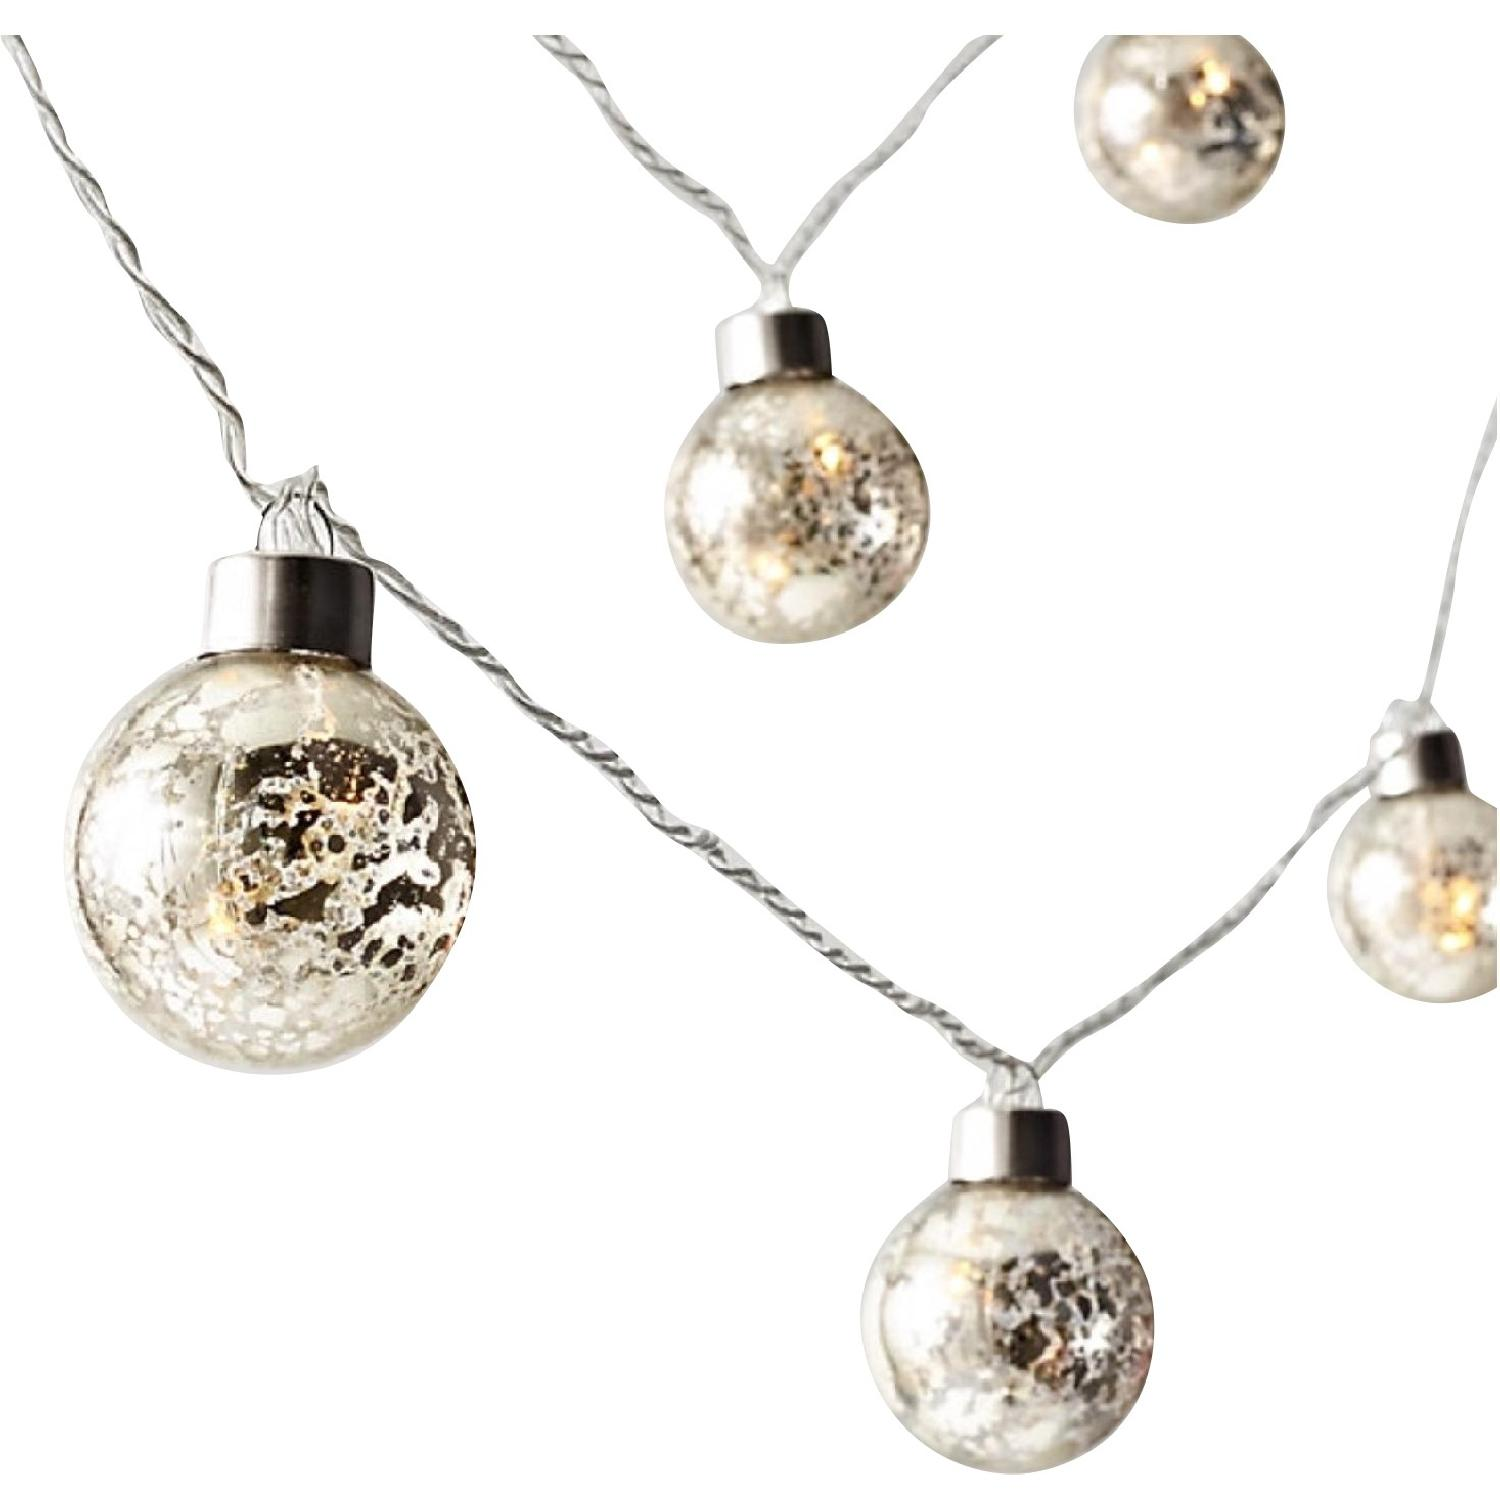 Restoration Hardware Mercury Glass Globe String Light